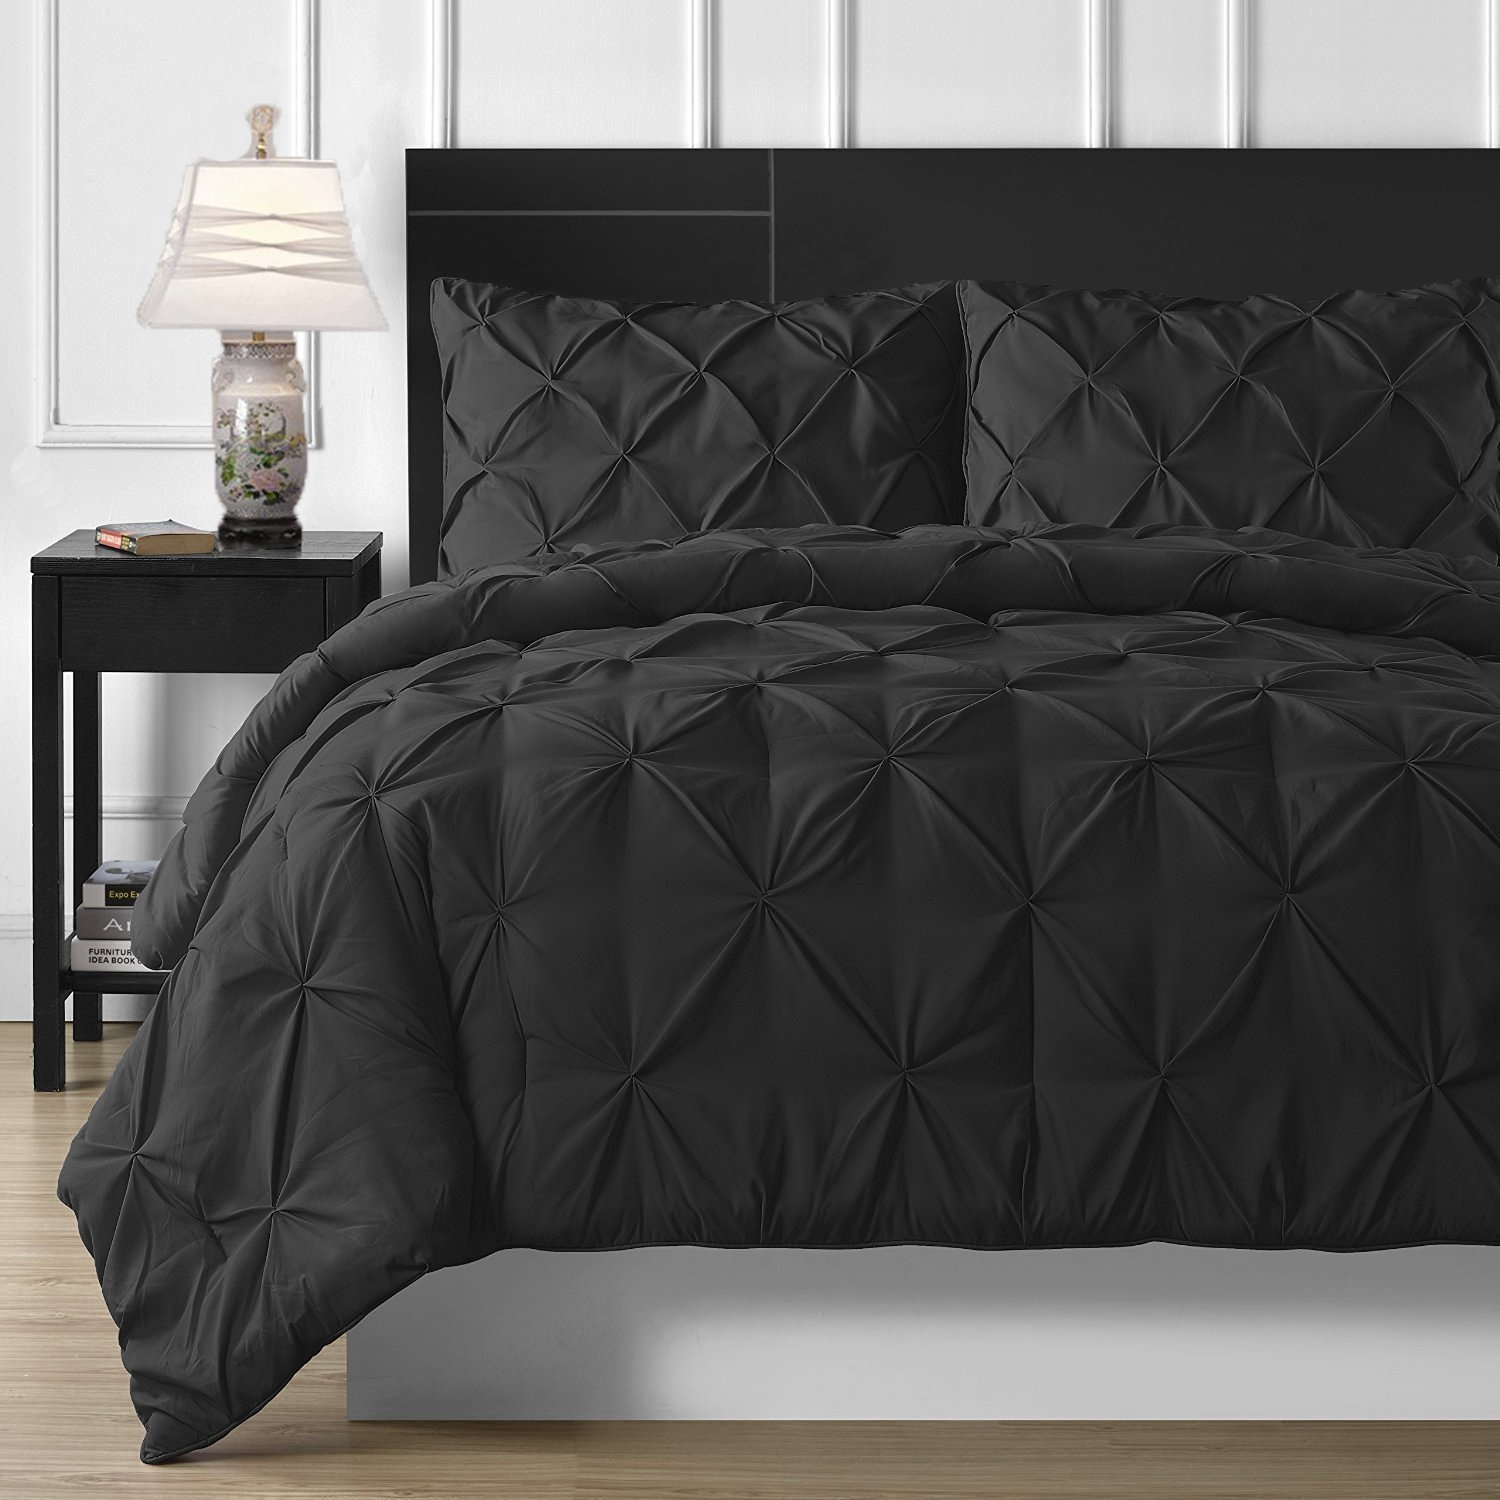 Homehug 1800 Pinch Pleat Puckering Comforter Set